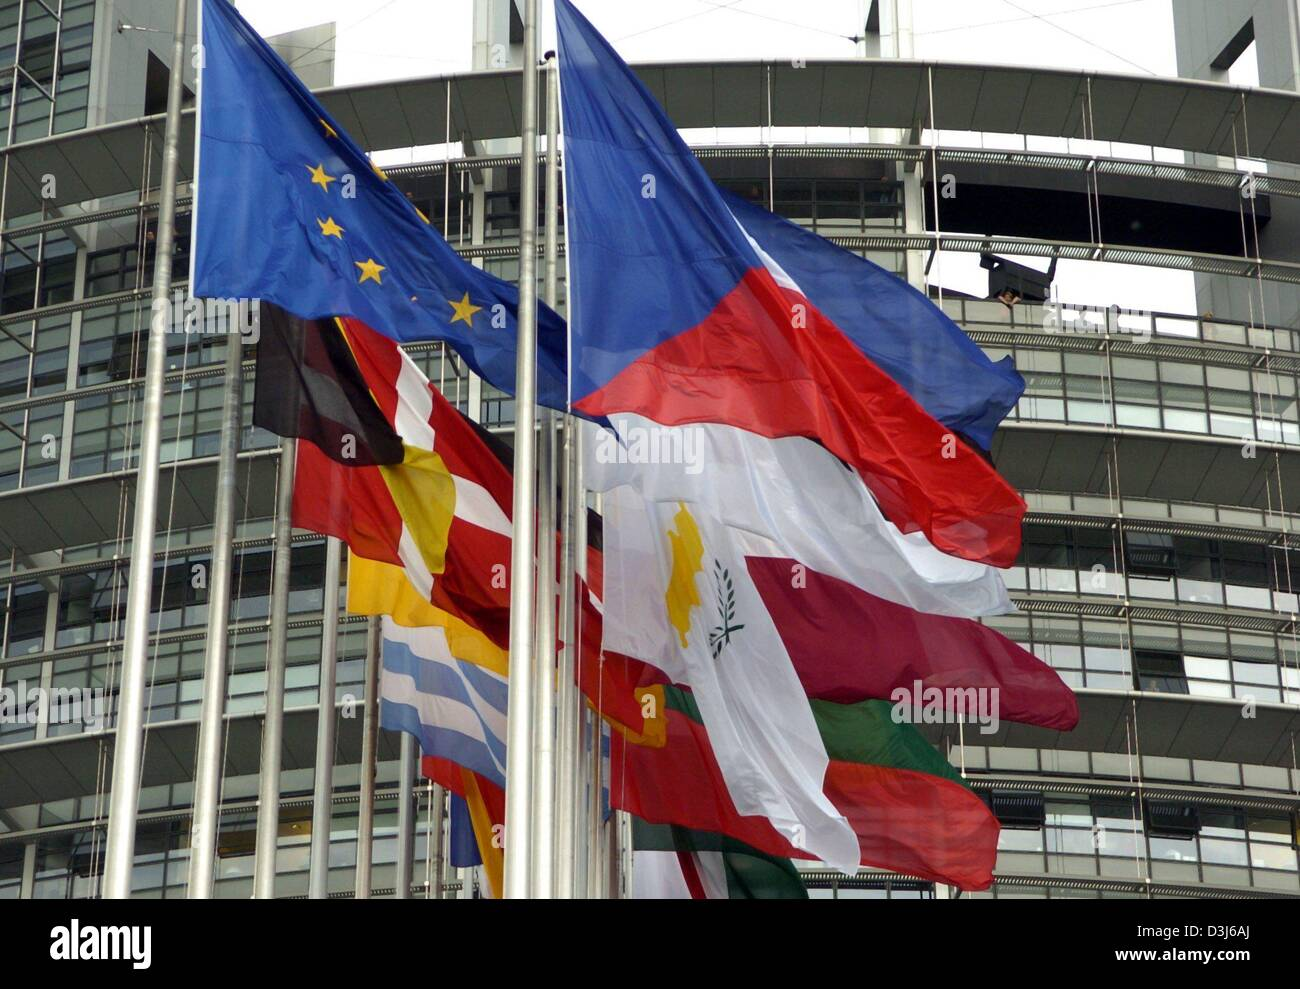 (dpa) - The flags of the new members of the European Union (R, Czech Republic in front) flutter next to the flags of the old EU members (L, European flag in front) in front of the European Parliament in Strasbourg, France, 3 May 2004. Stock Photo